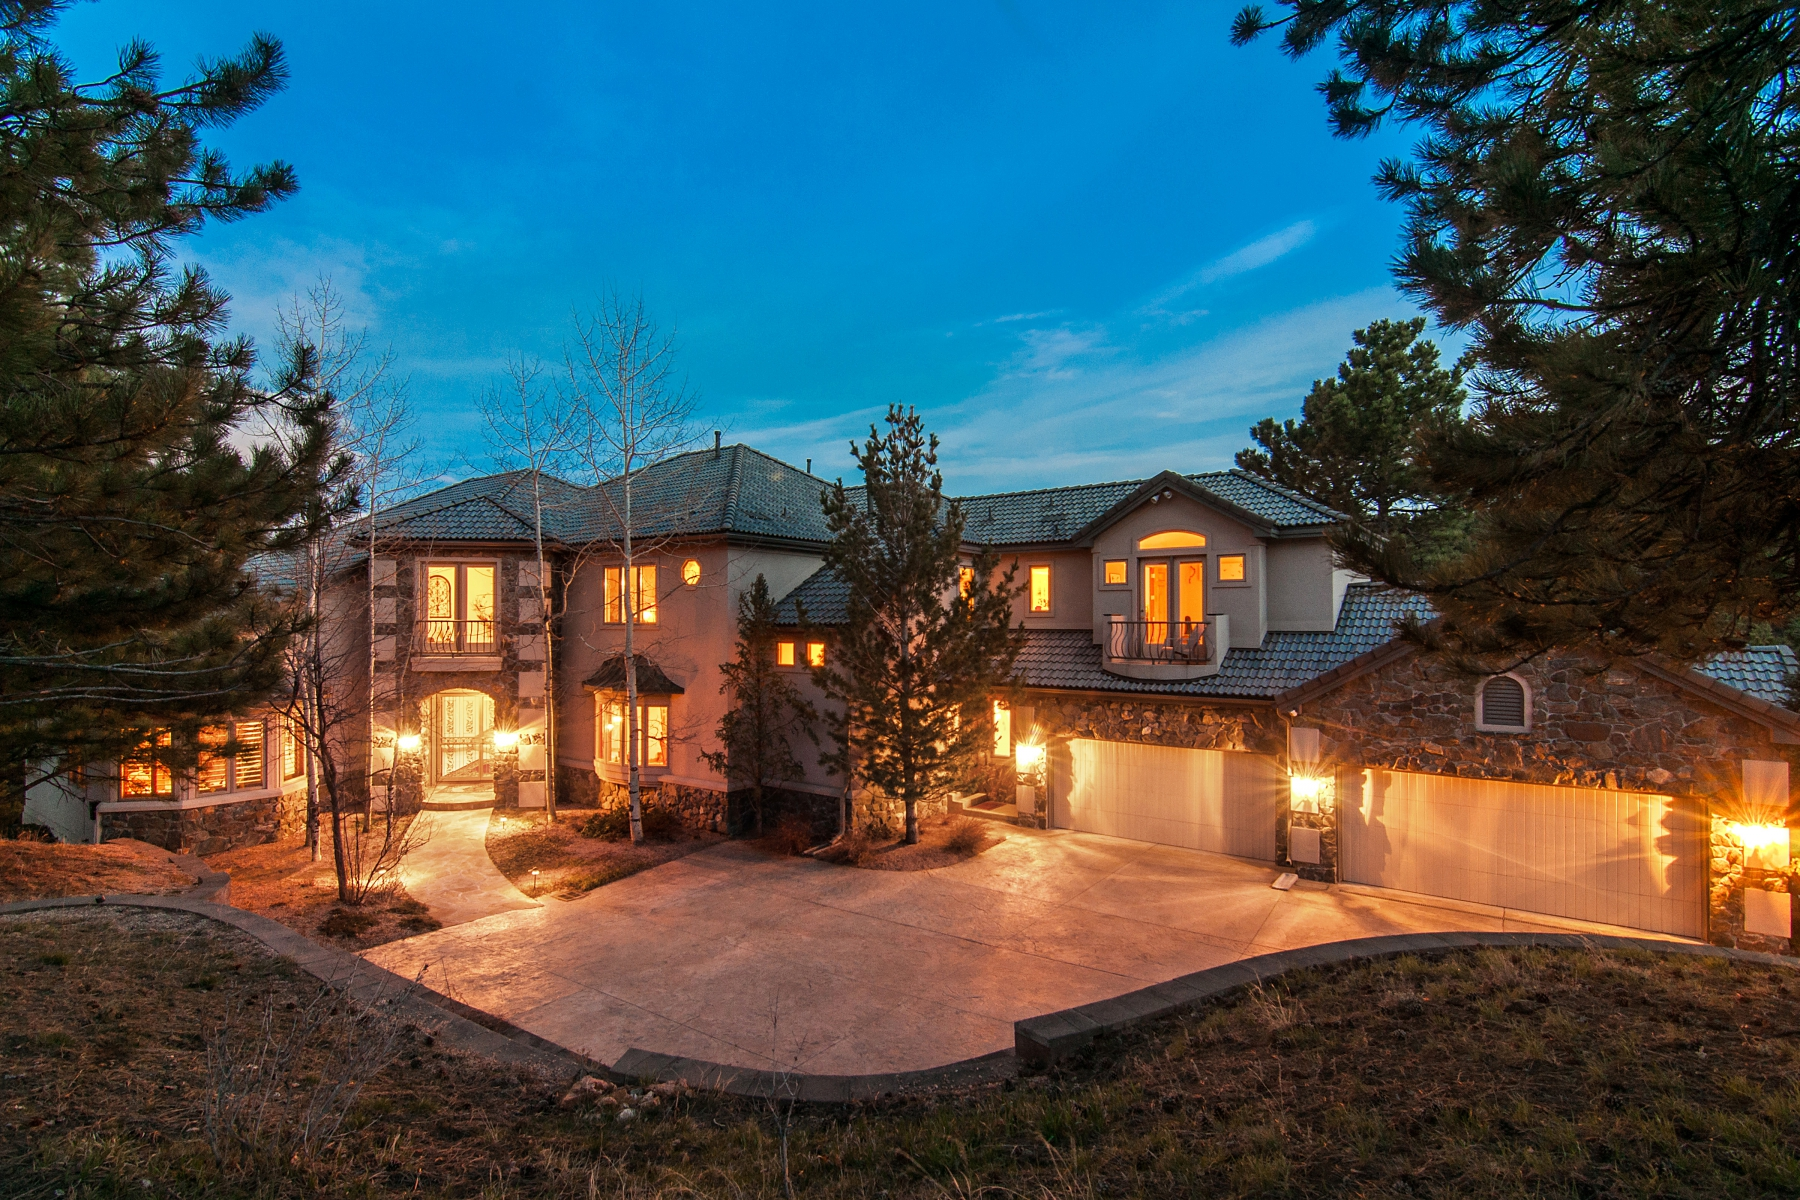 Single Family Home for Sale at Modern Mountain Luxury 22554 Treetop Lane Golden, Colorado 80401 United States